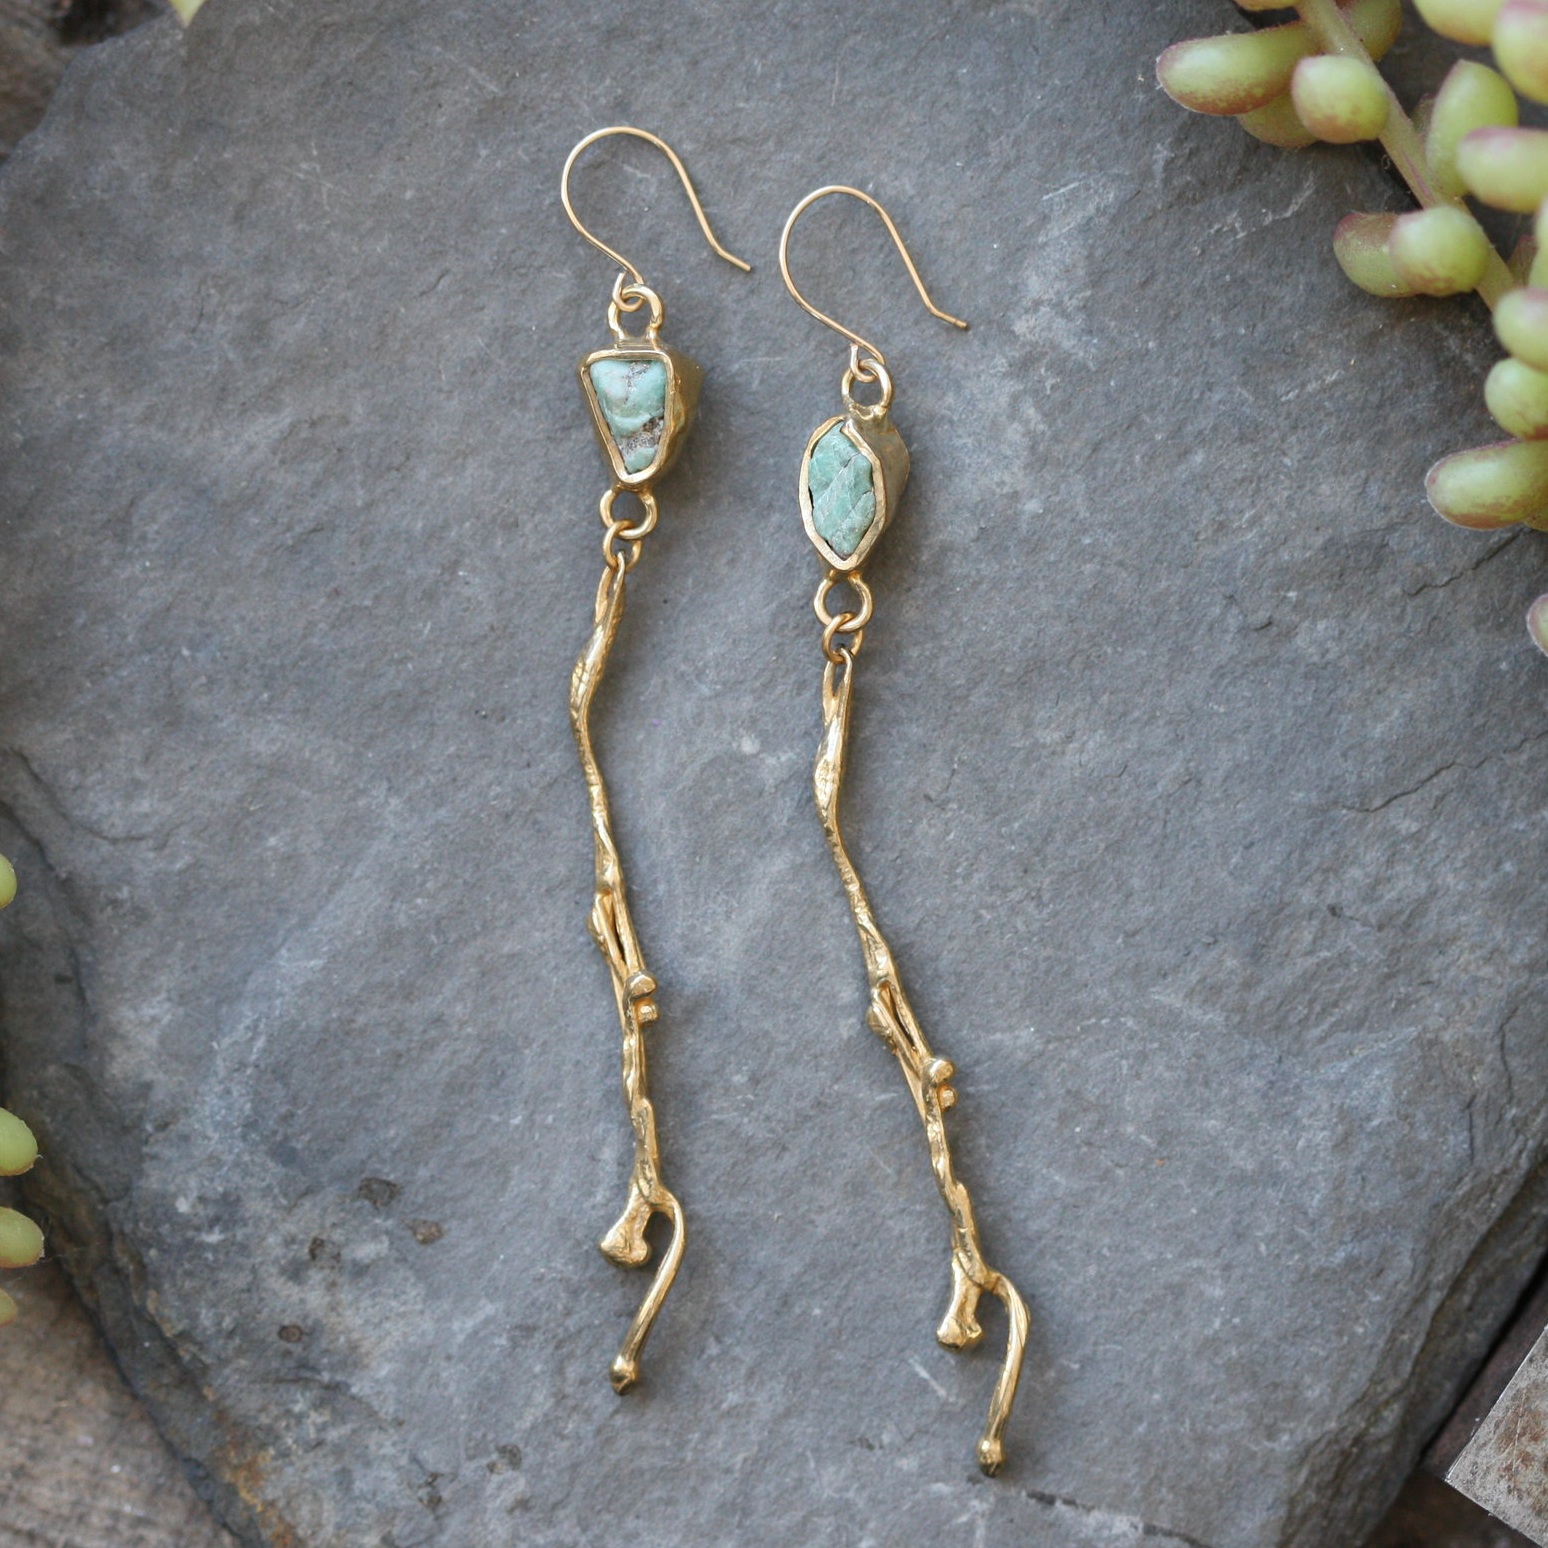 weeping_willow_earrings2.jpg